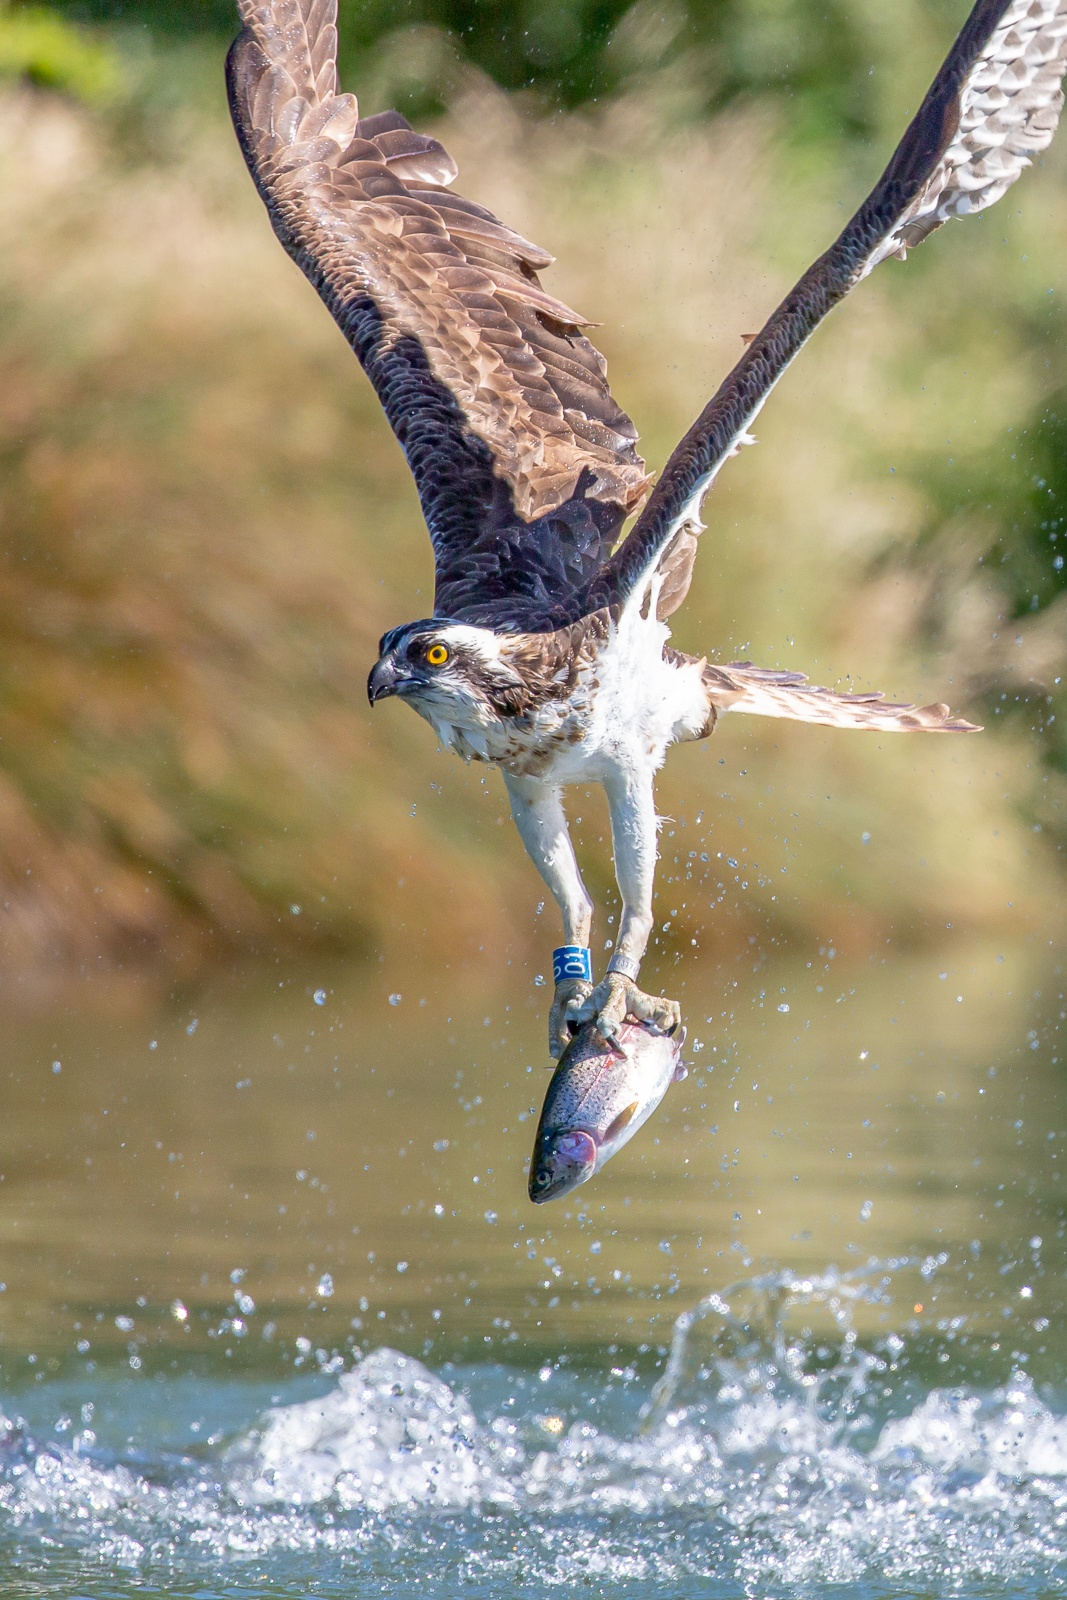 osprey leaving water with fish